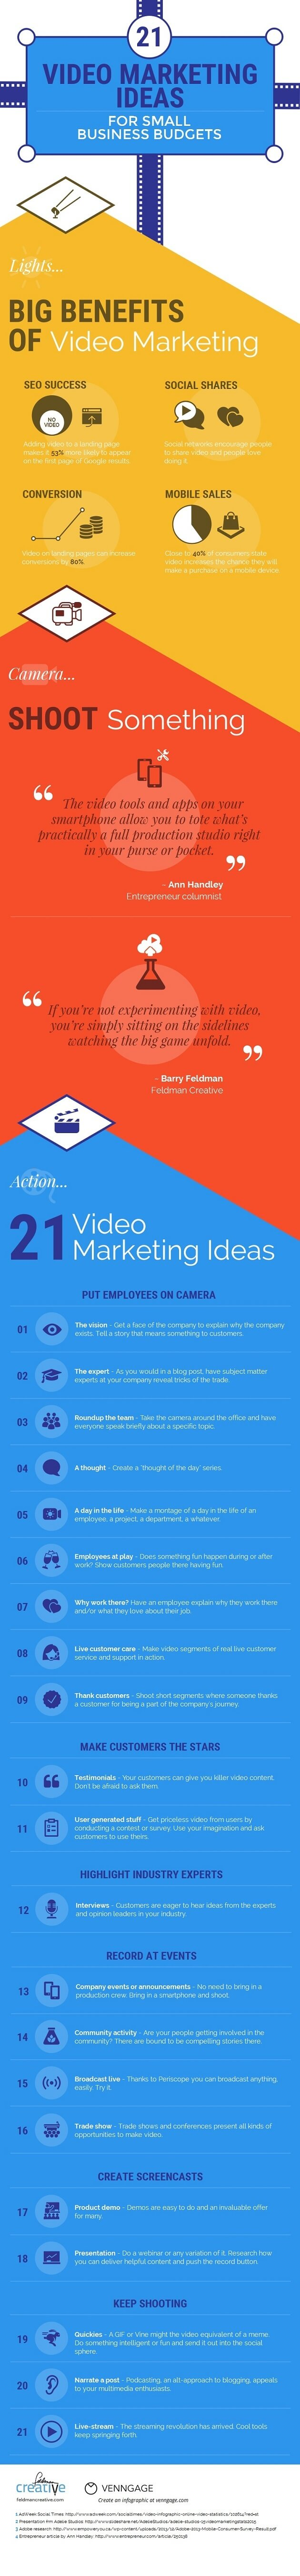 160423-21-video-marketing-ideas-for-small-budgets-infographic-preview